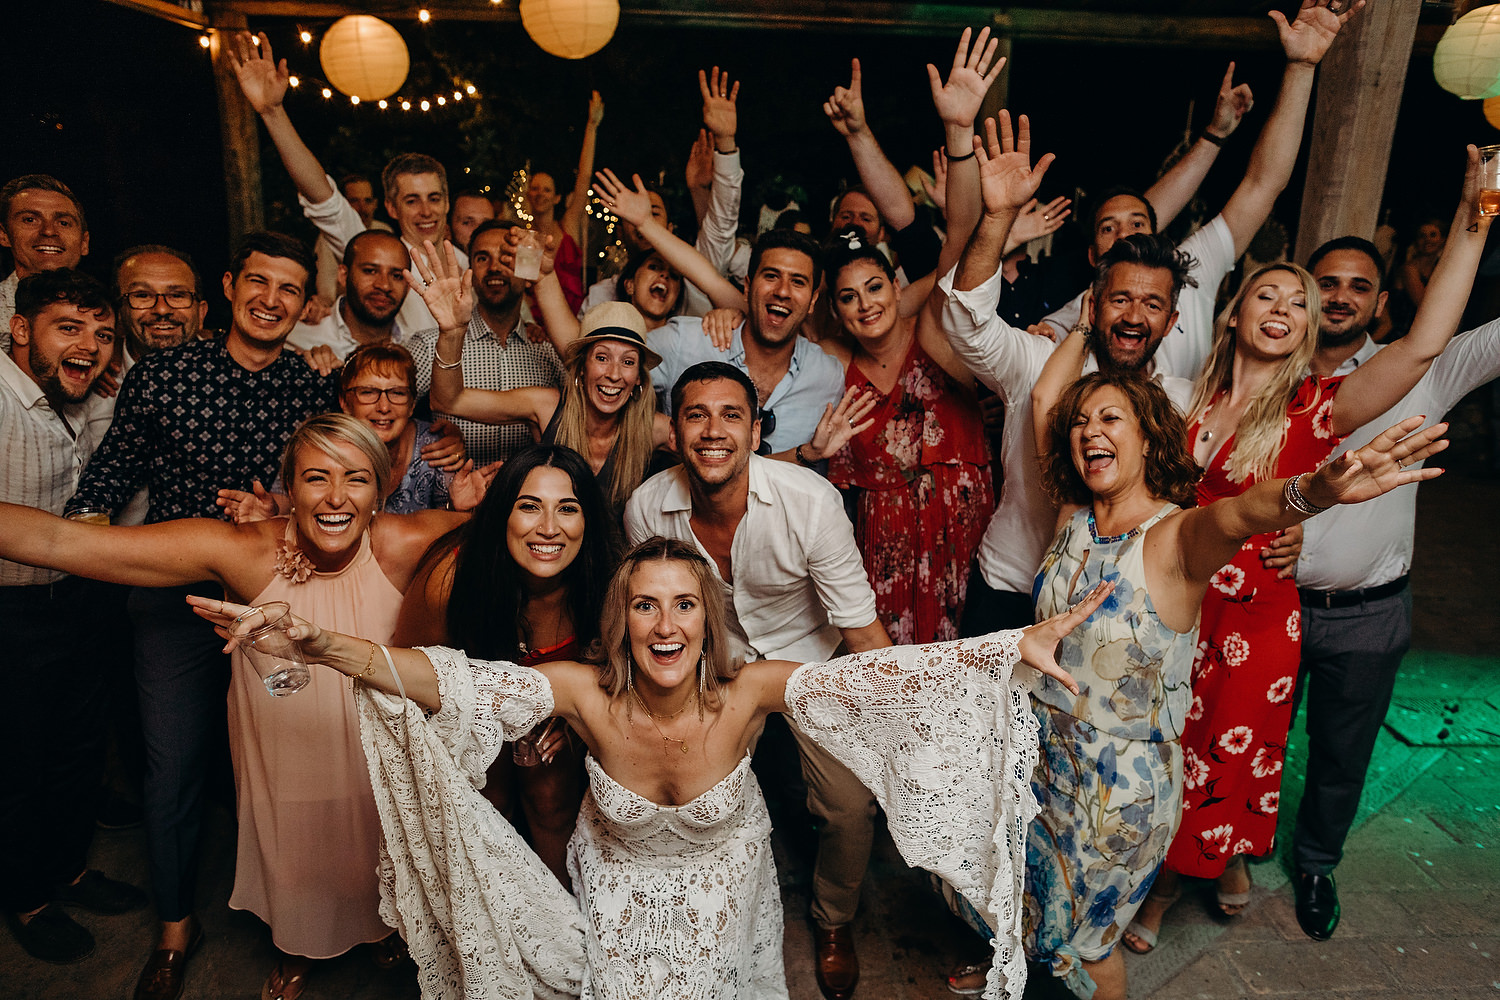 Group photograph of wedding guests